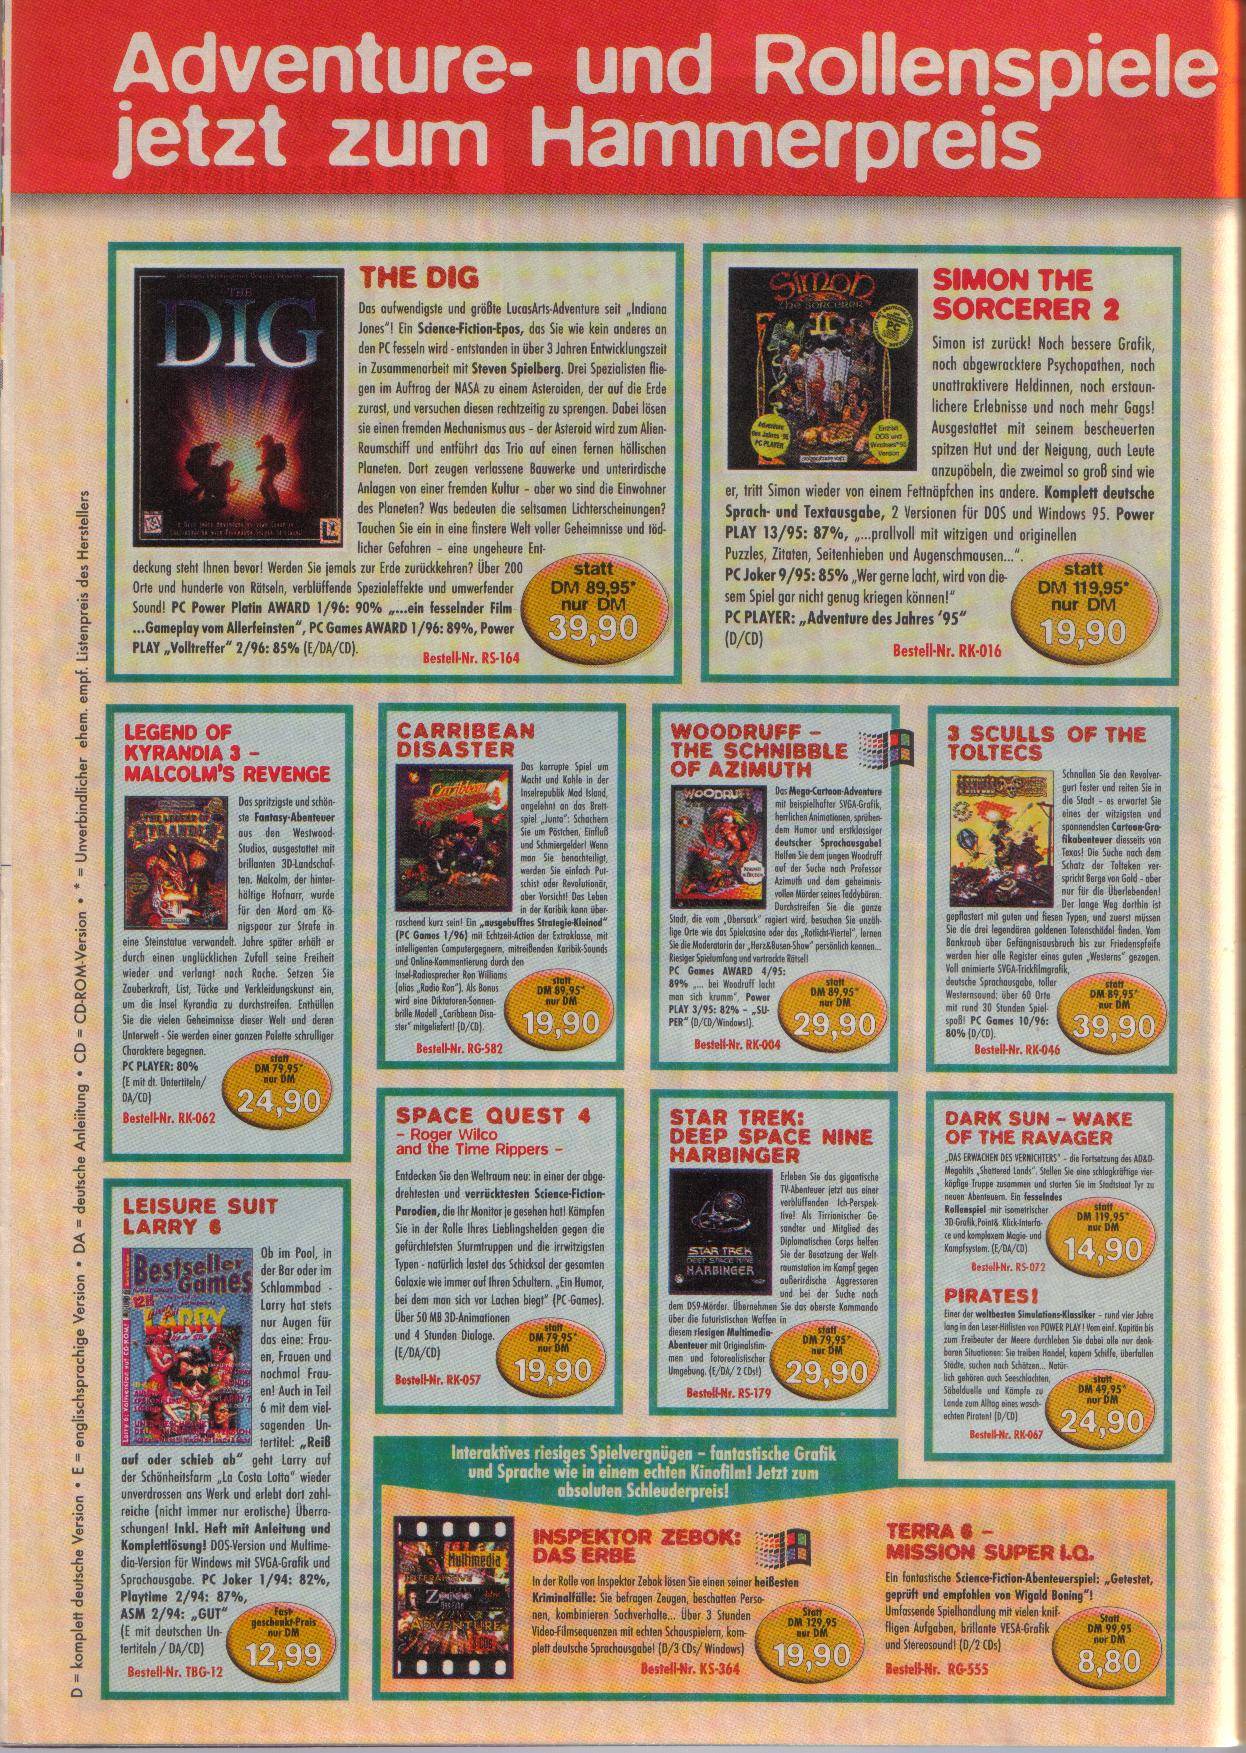 Dungeon Master II for PC (German, Best Seller Games) Page 48